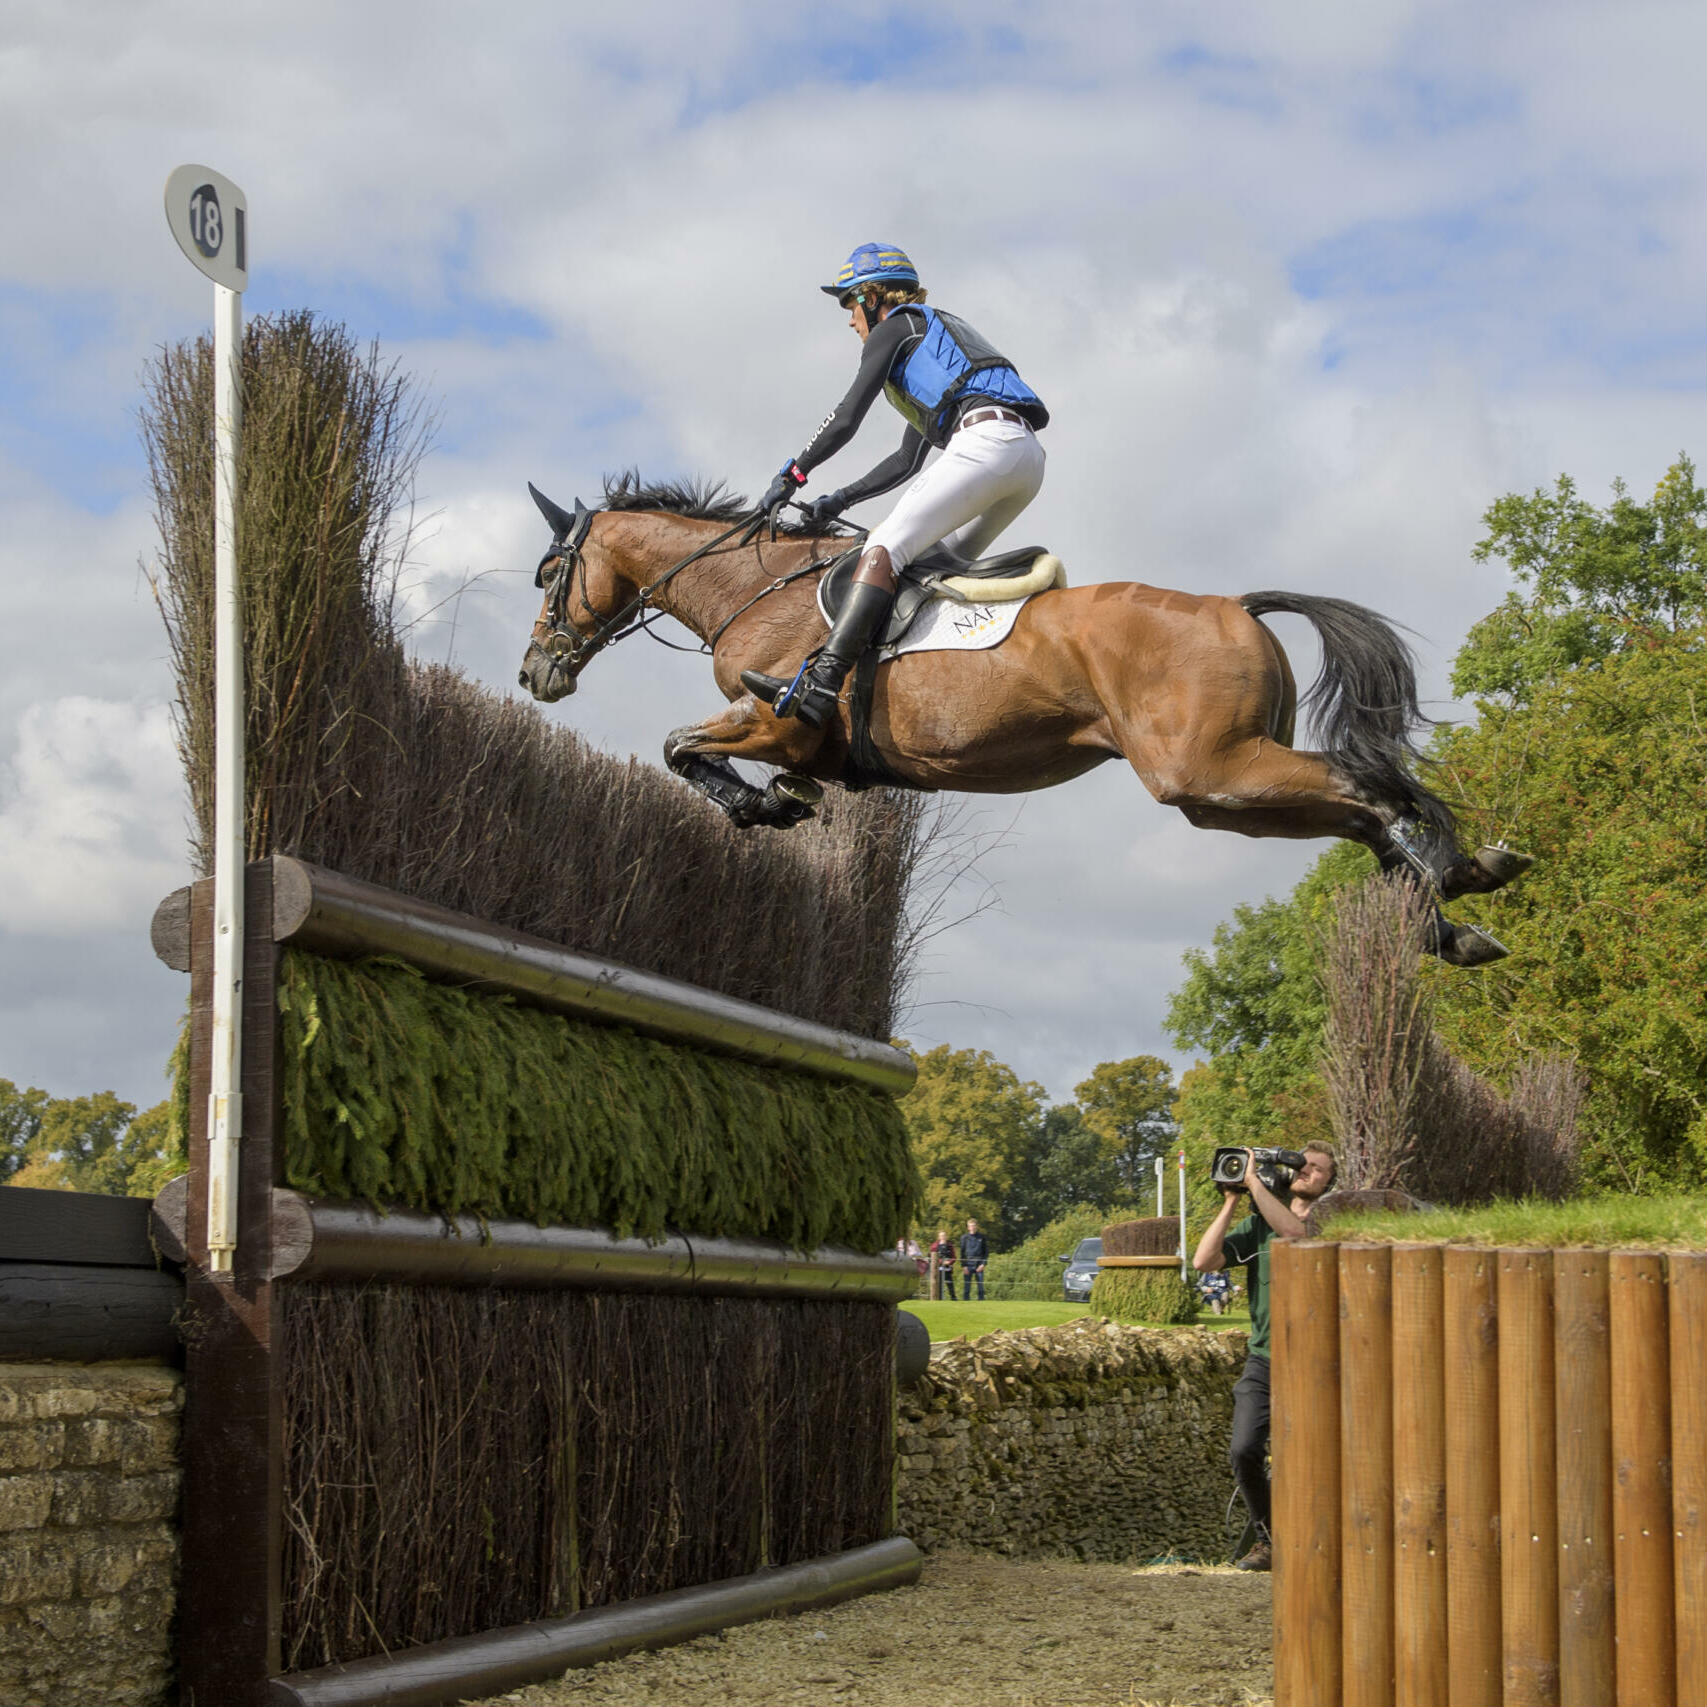 Ludwig Svennerstal SWE) riding Stinger during the cross country phase of the  Land Rover Burghley Horse Trials in the grounds of Burghley House near Stamford in Lincolnshire in the UK between 5 - 8th September 2019